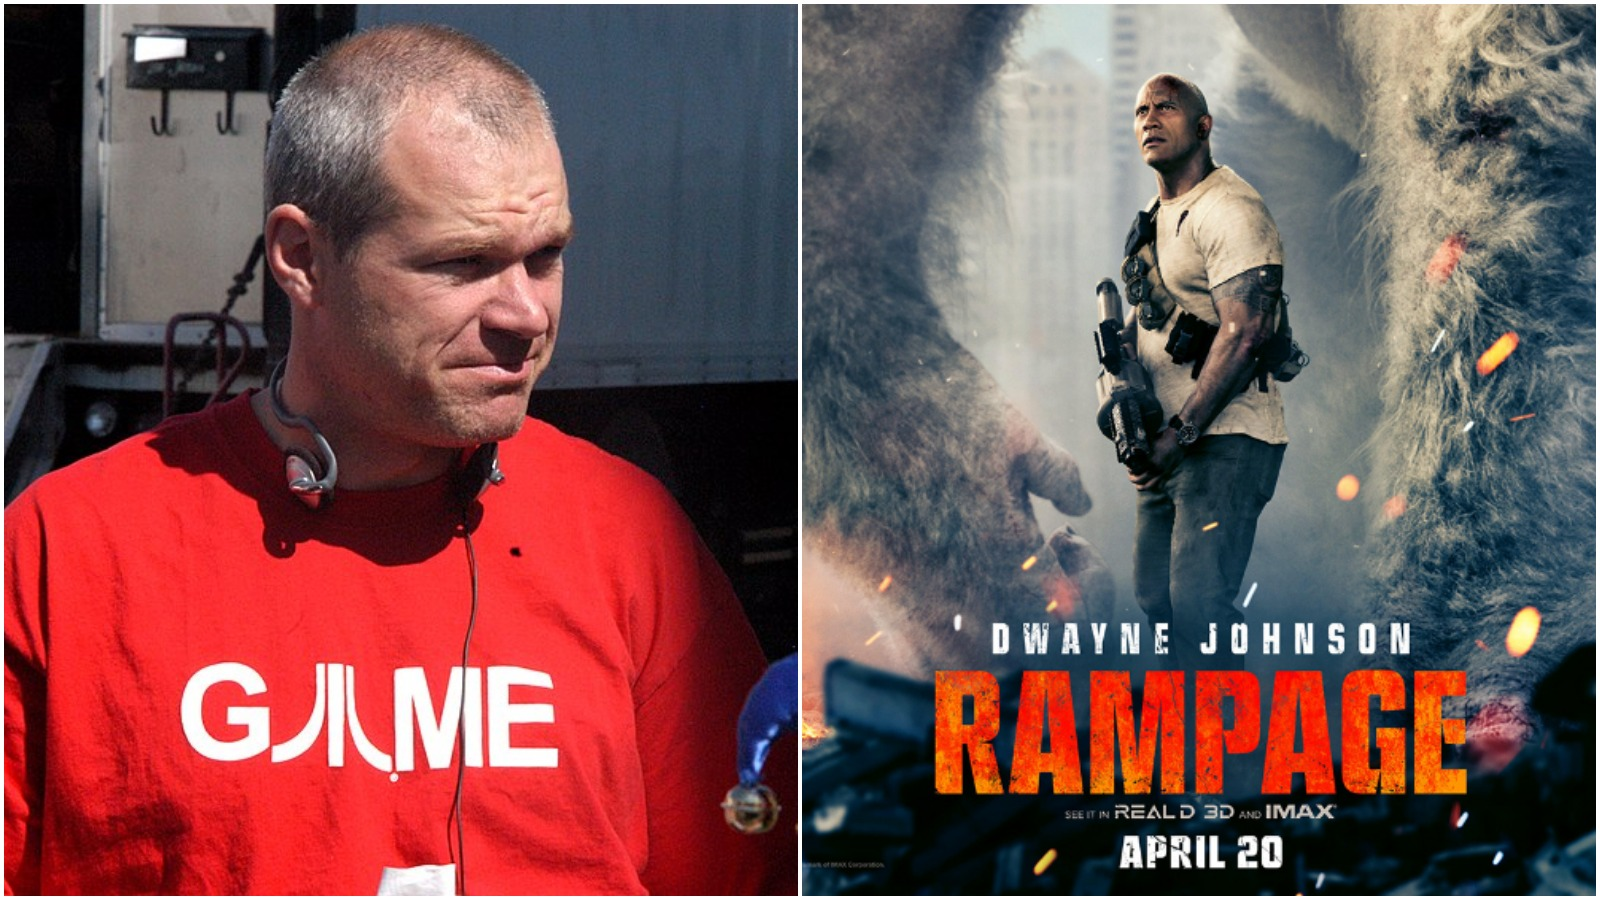 Fanboy Rampage Uwe Boll Launches Legal And Barf Attack On Rampage